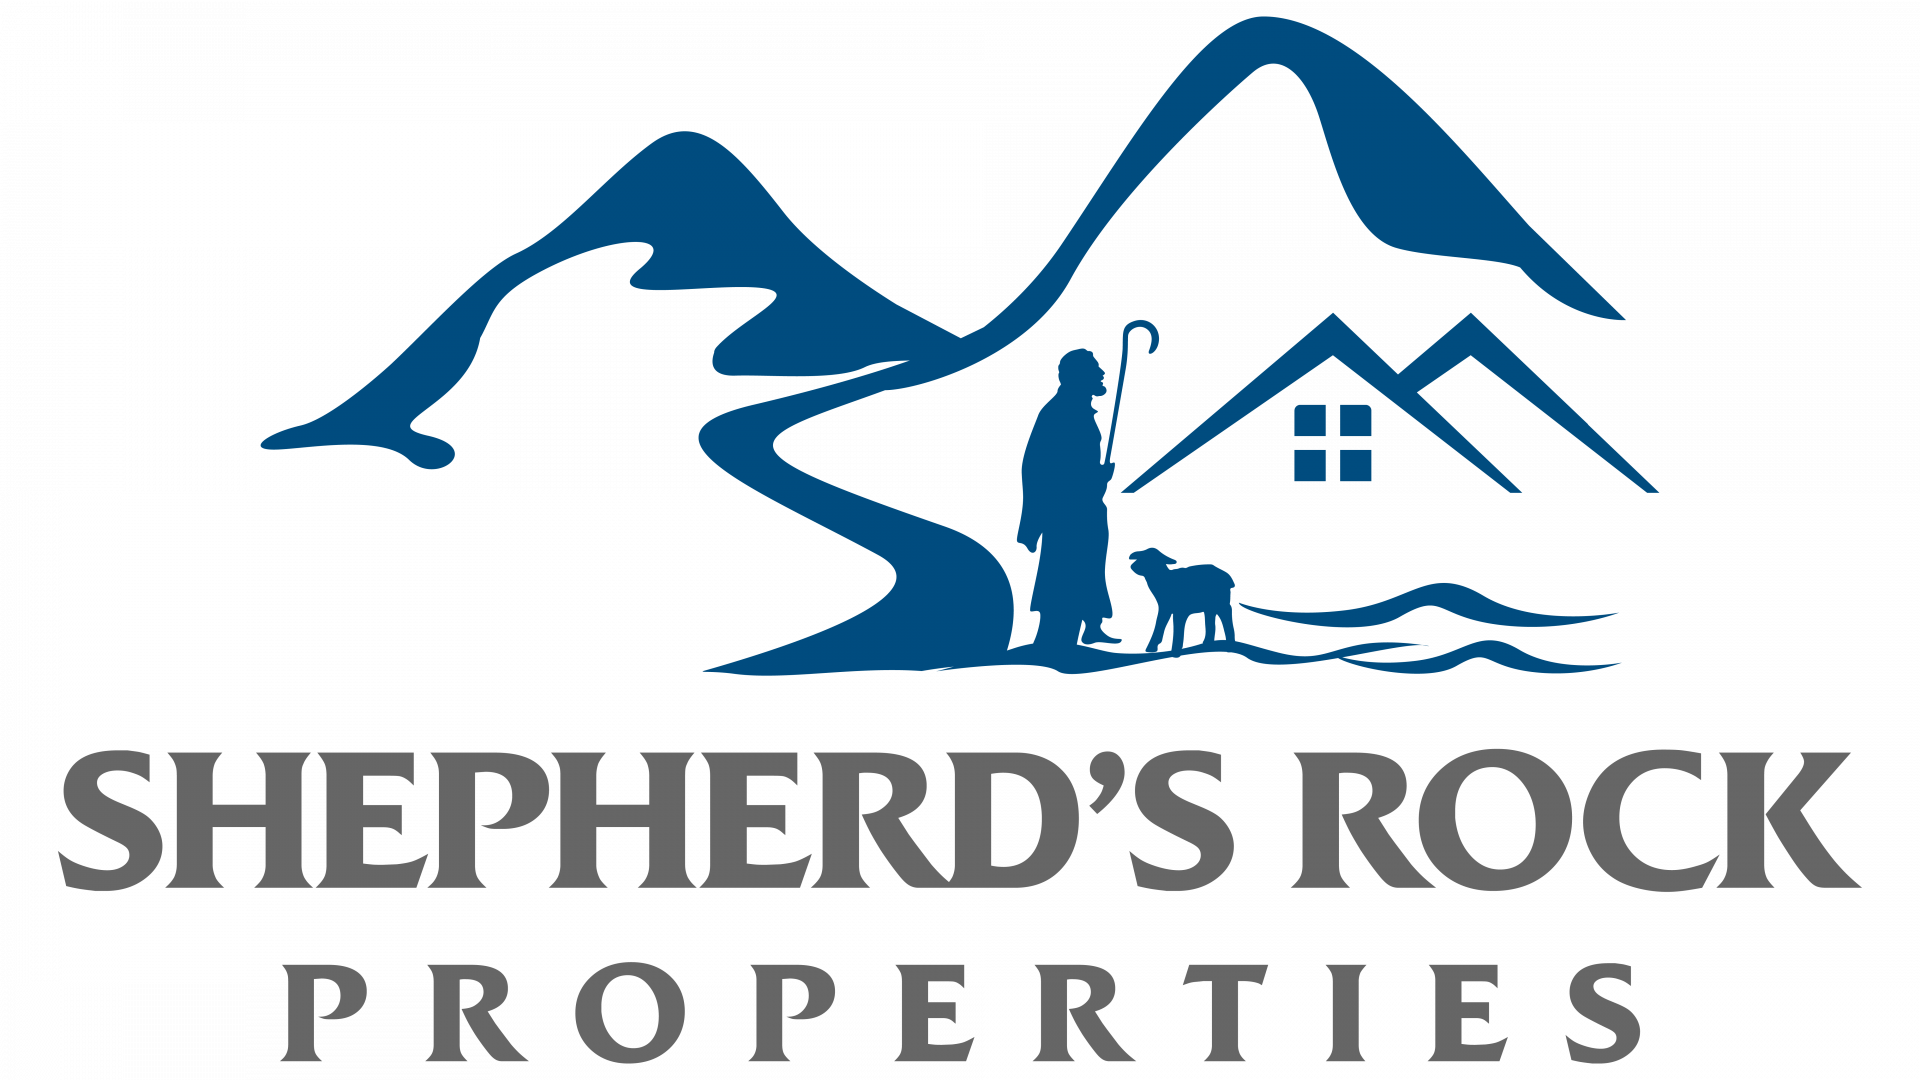 Shepherd's Rock Properties logo